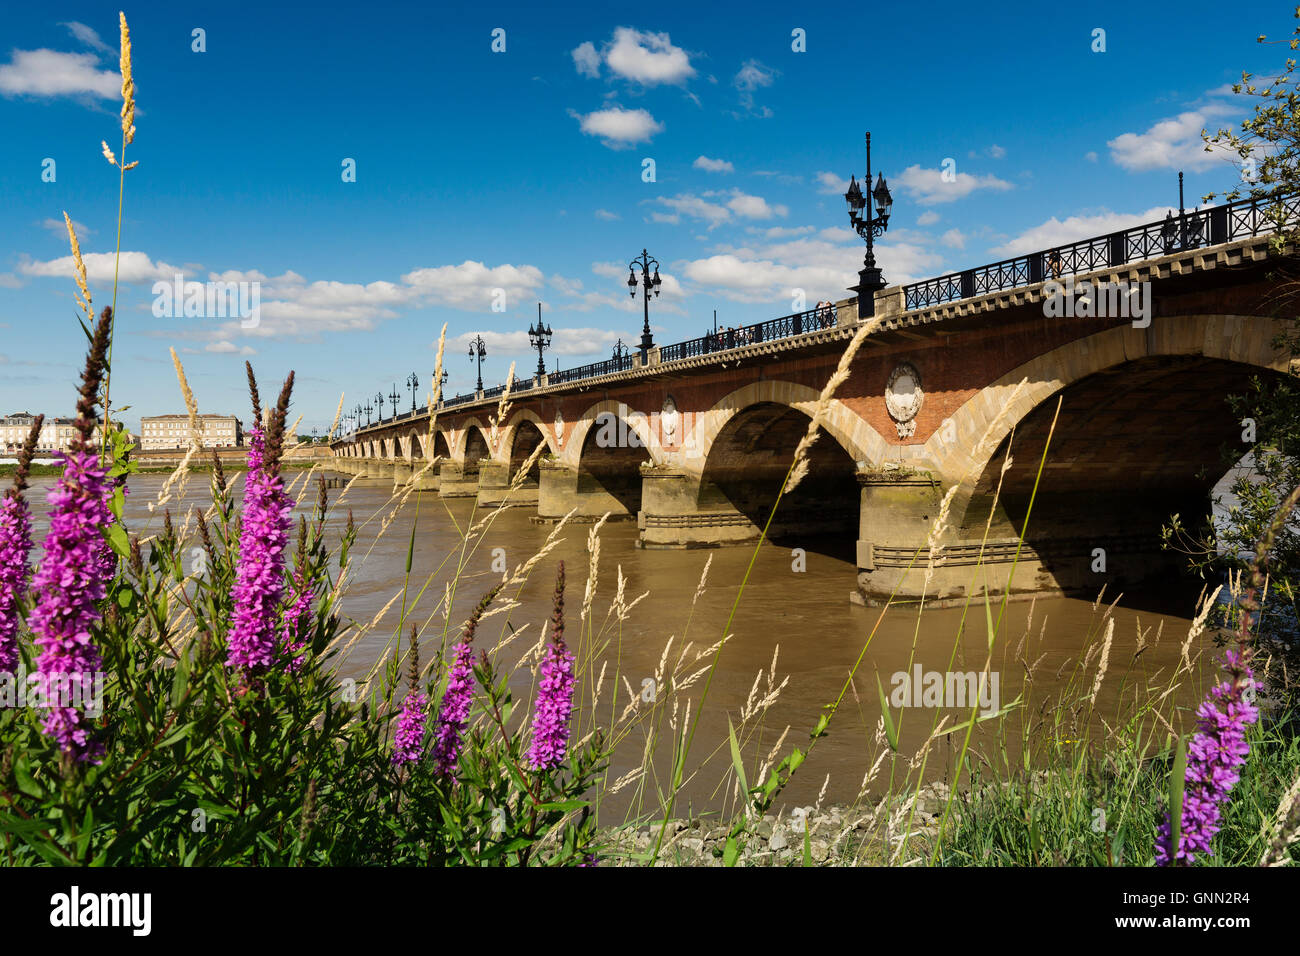 Pont de Pierre. Stone Bridge & Garonne River. Bordeaux, Gironde. Aquitaine France Europe - Stock Image